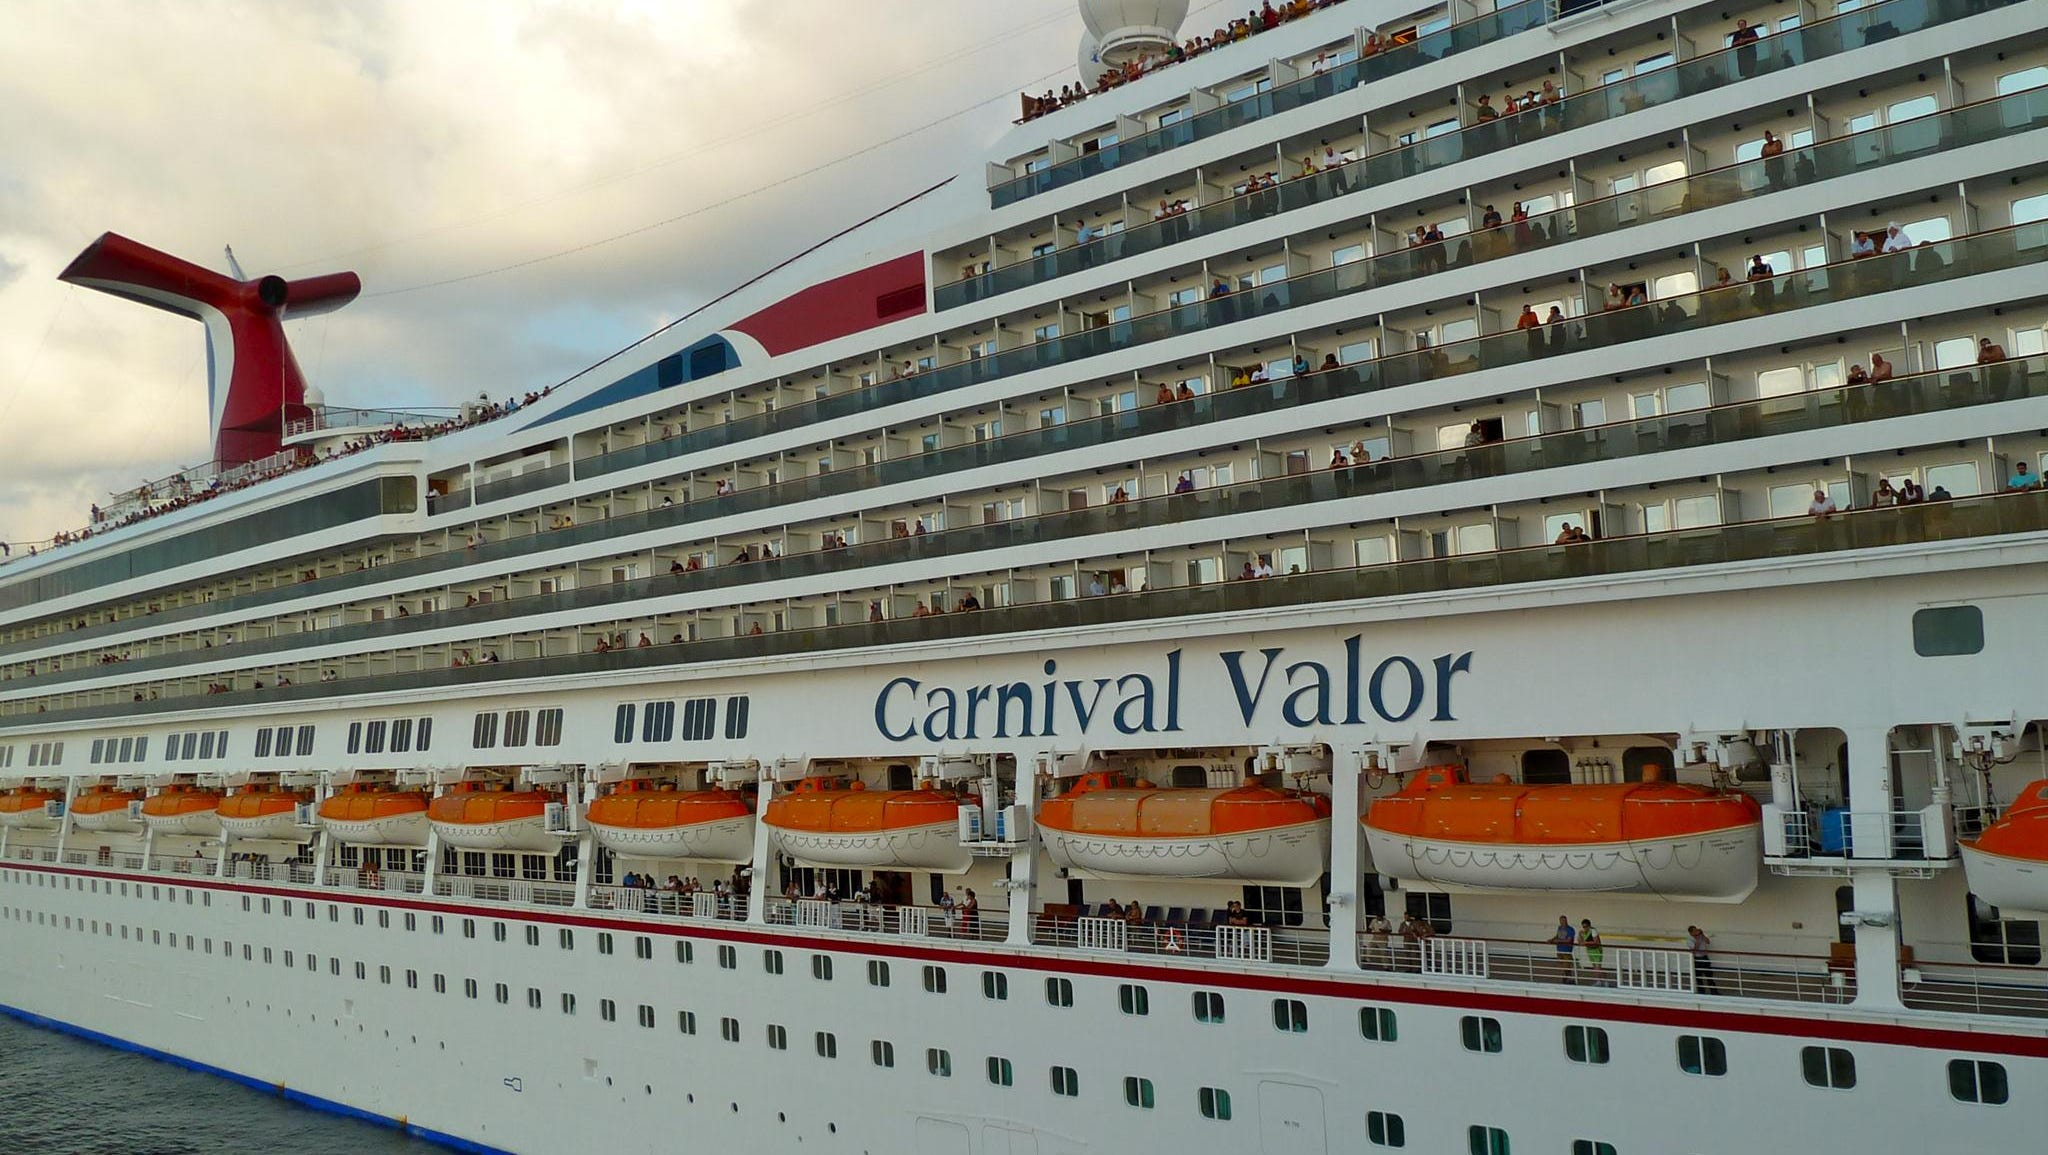 Carnival Valor has 13 guest decks with a wide variety of entertainment and dining venues as well as seven overall categories of accommodation. The ship's decorative theme takes its inspiration from heroes, both real and fictional, with an American slant.